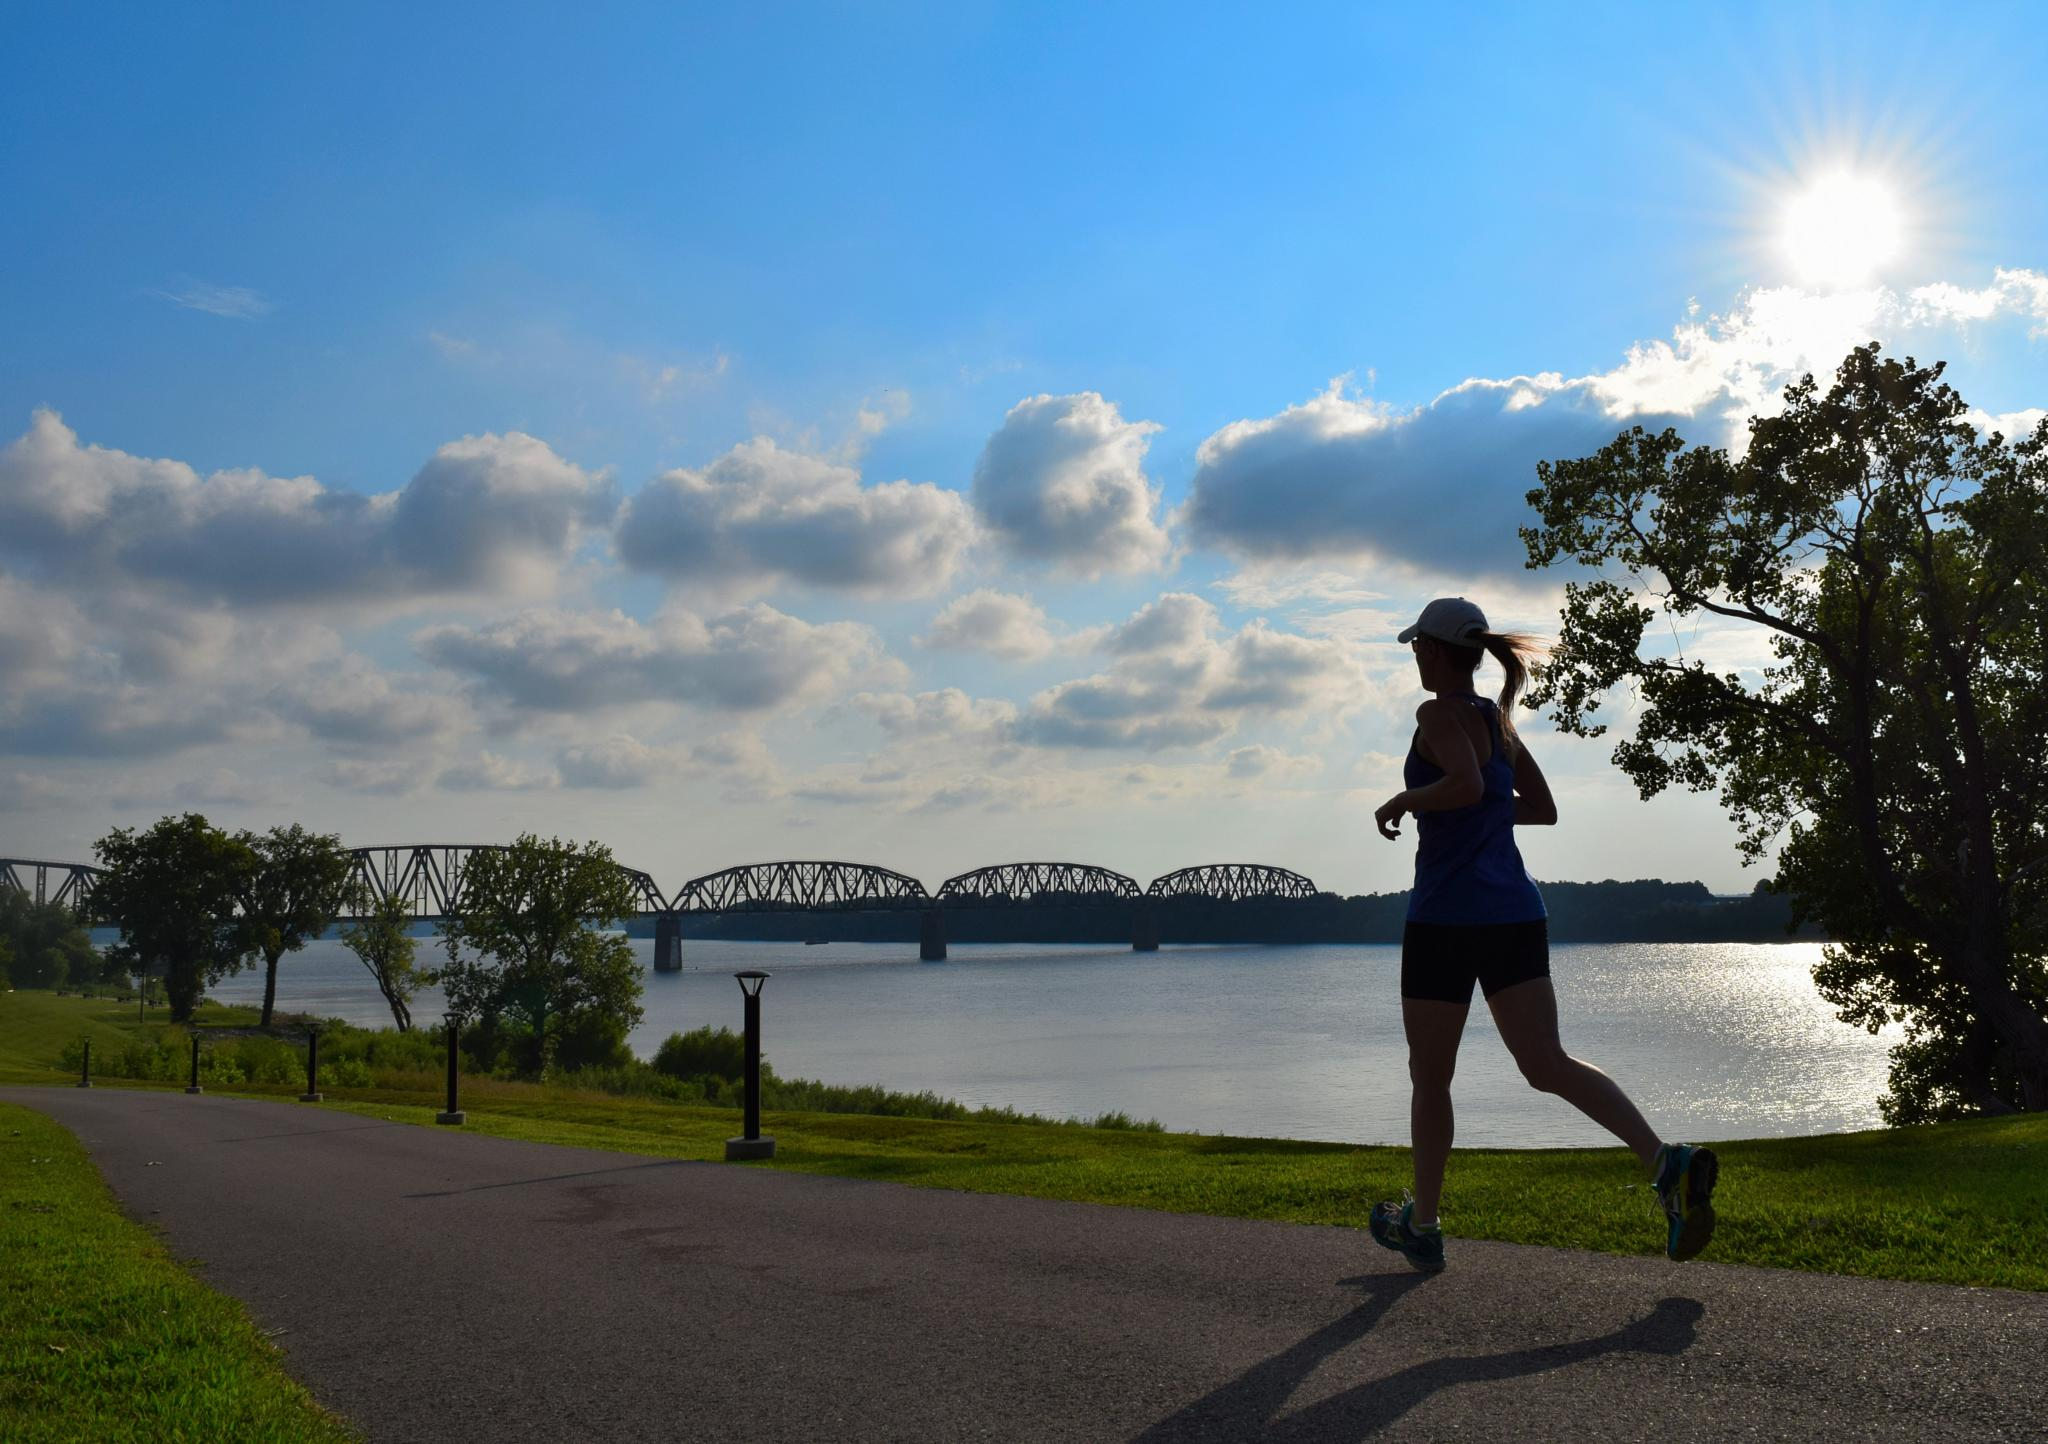 Runner on the River walk by LornaWLittrell